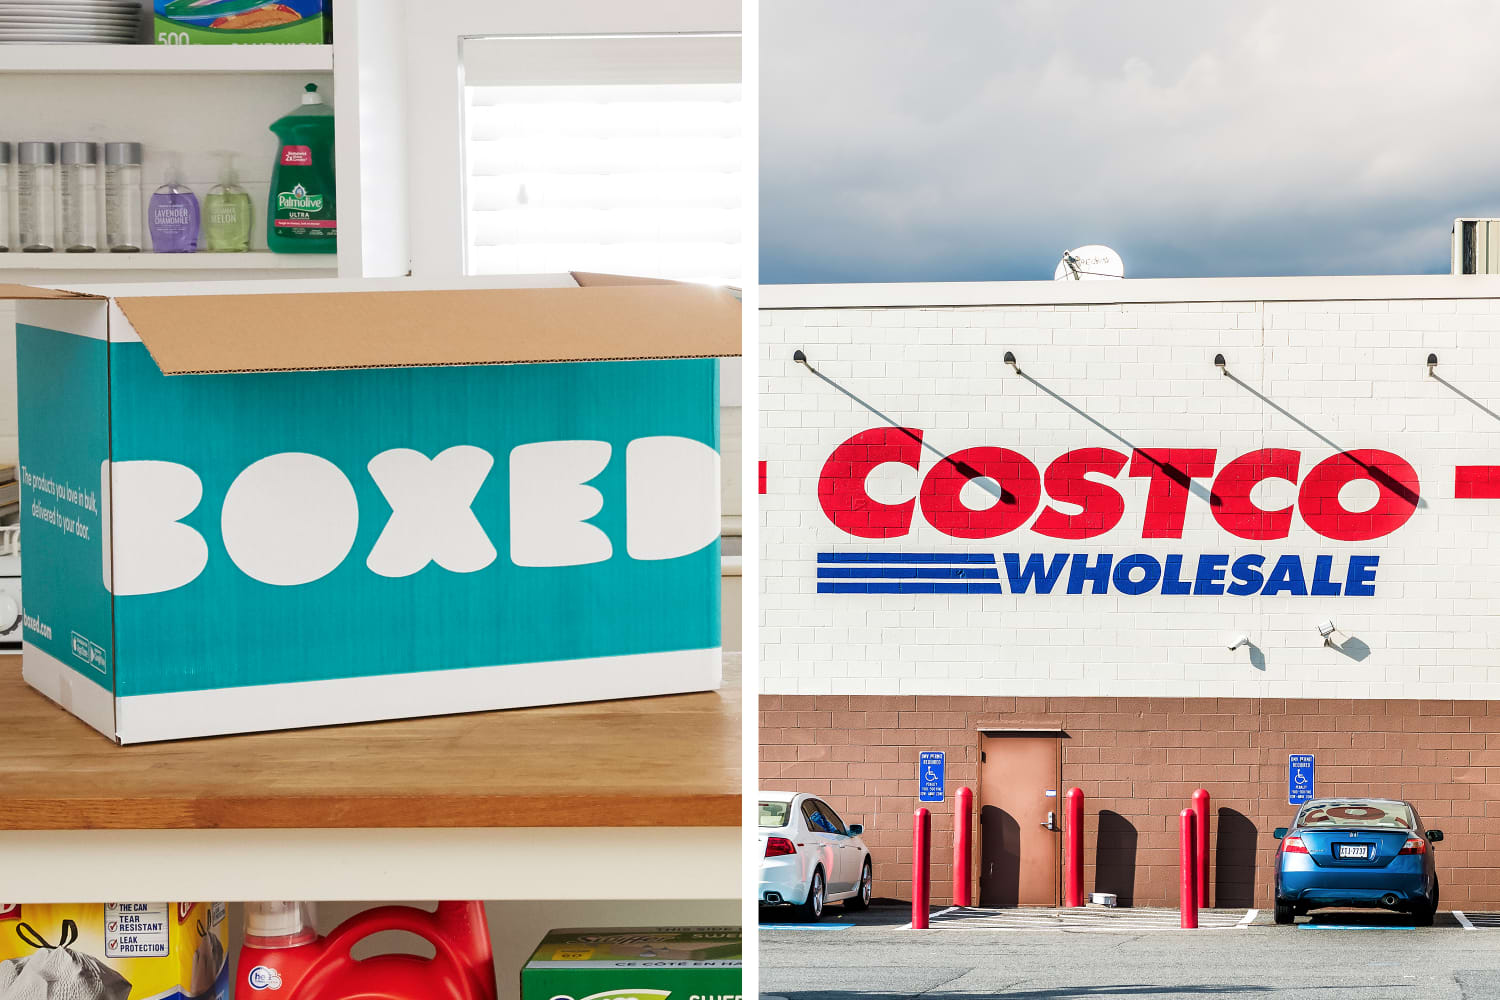 Costco vs. Boxed: Here's Which Bulk Retailer Is Cheaper